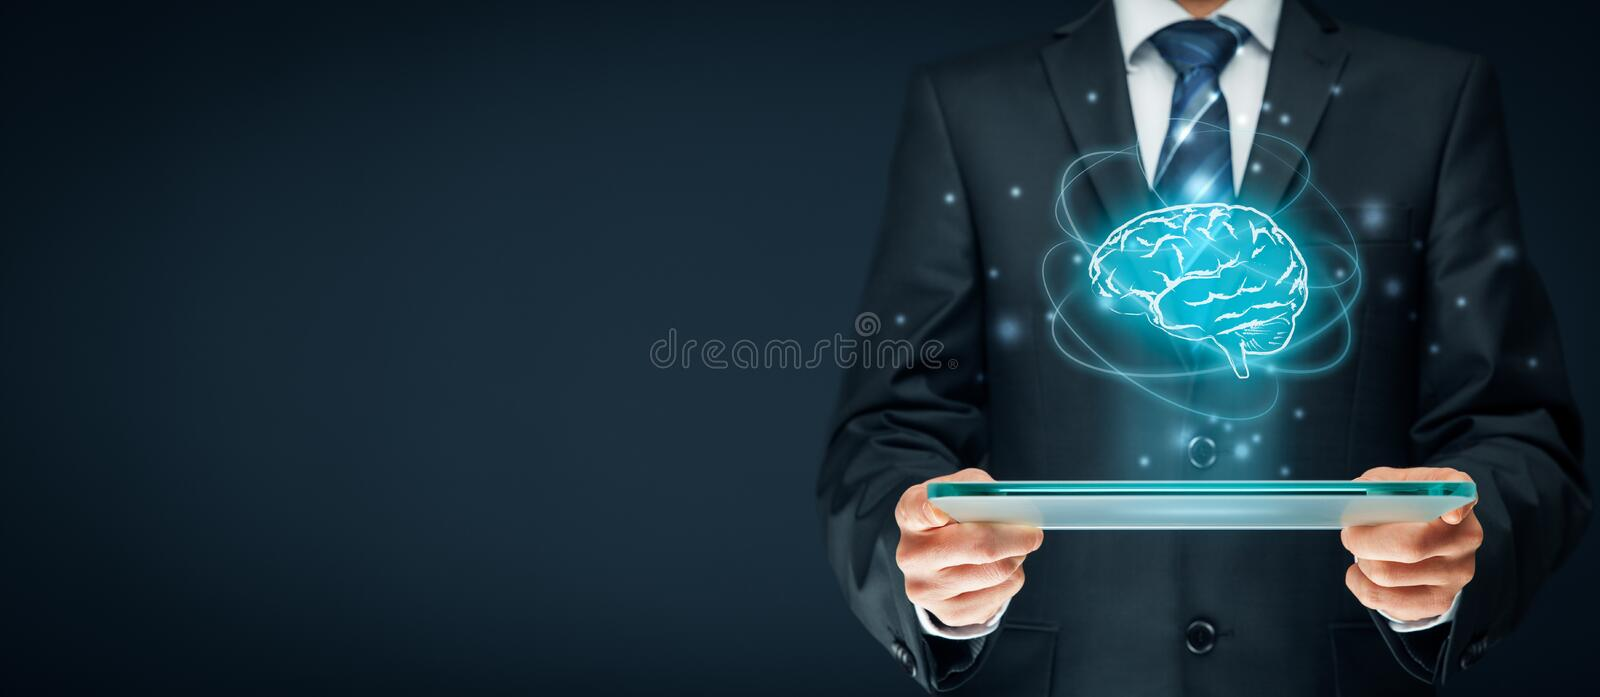 Artificial intelligence. AI, machine deep learning, data mining, expert system software, and another modern computer technologies concepts. Brain representing royalty free stock photos